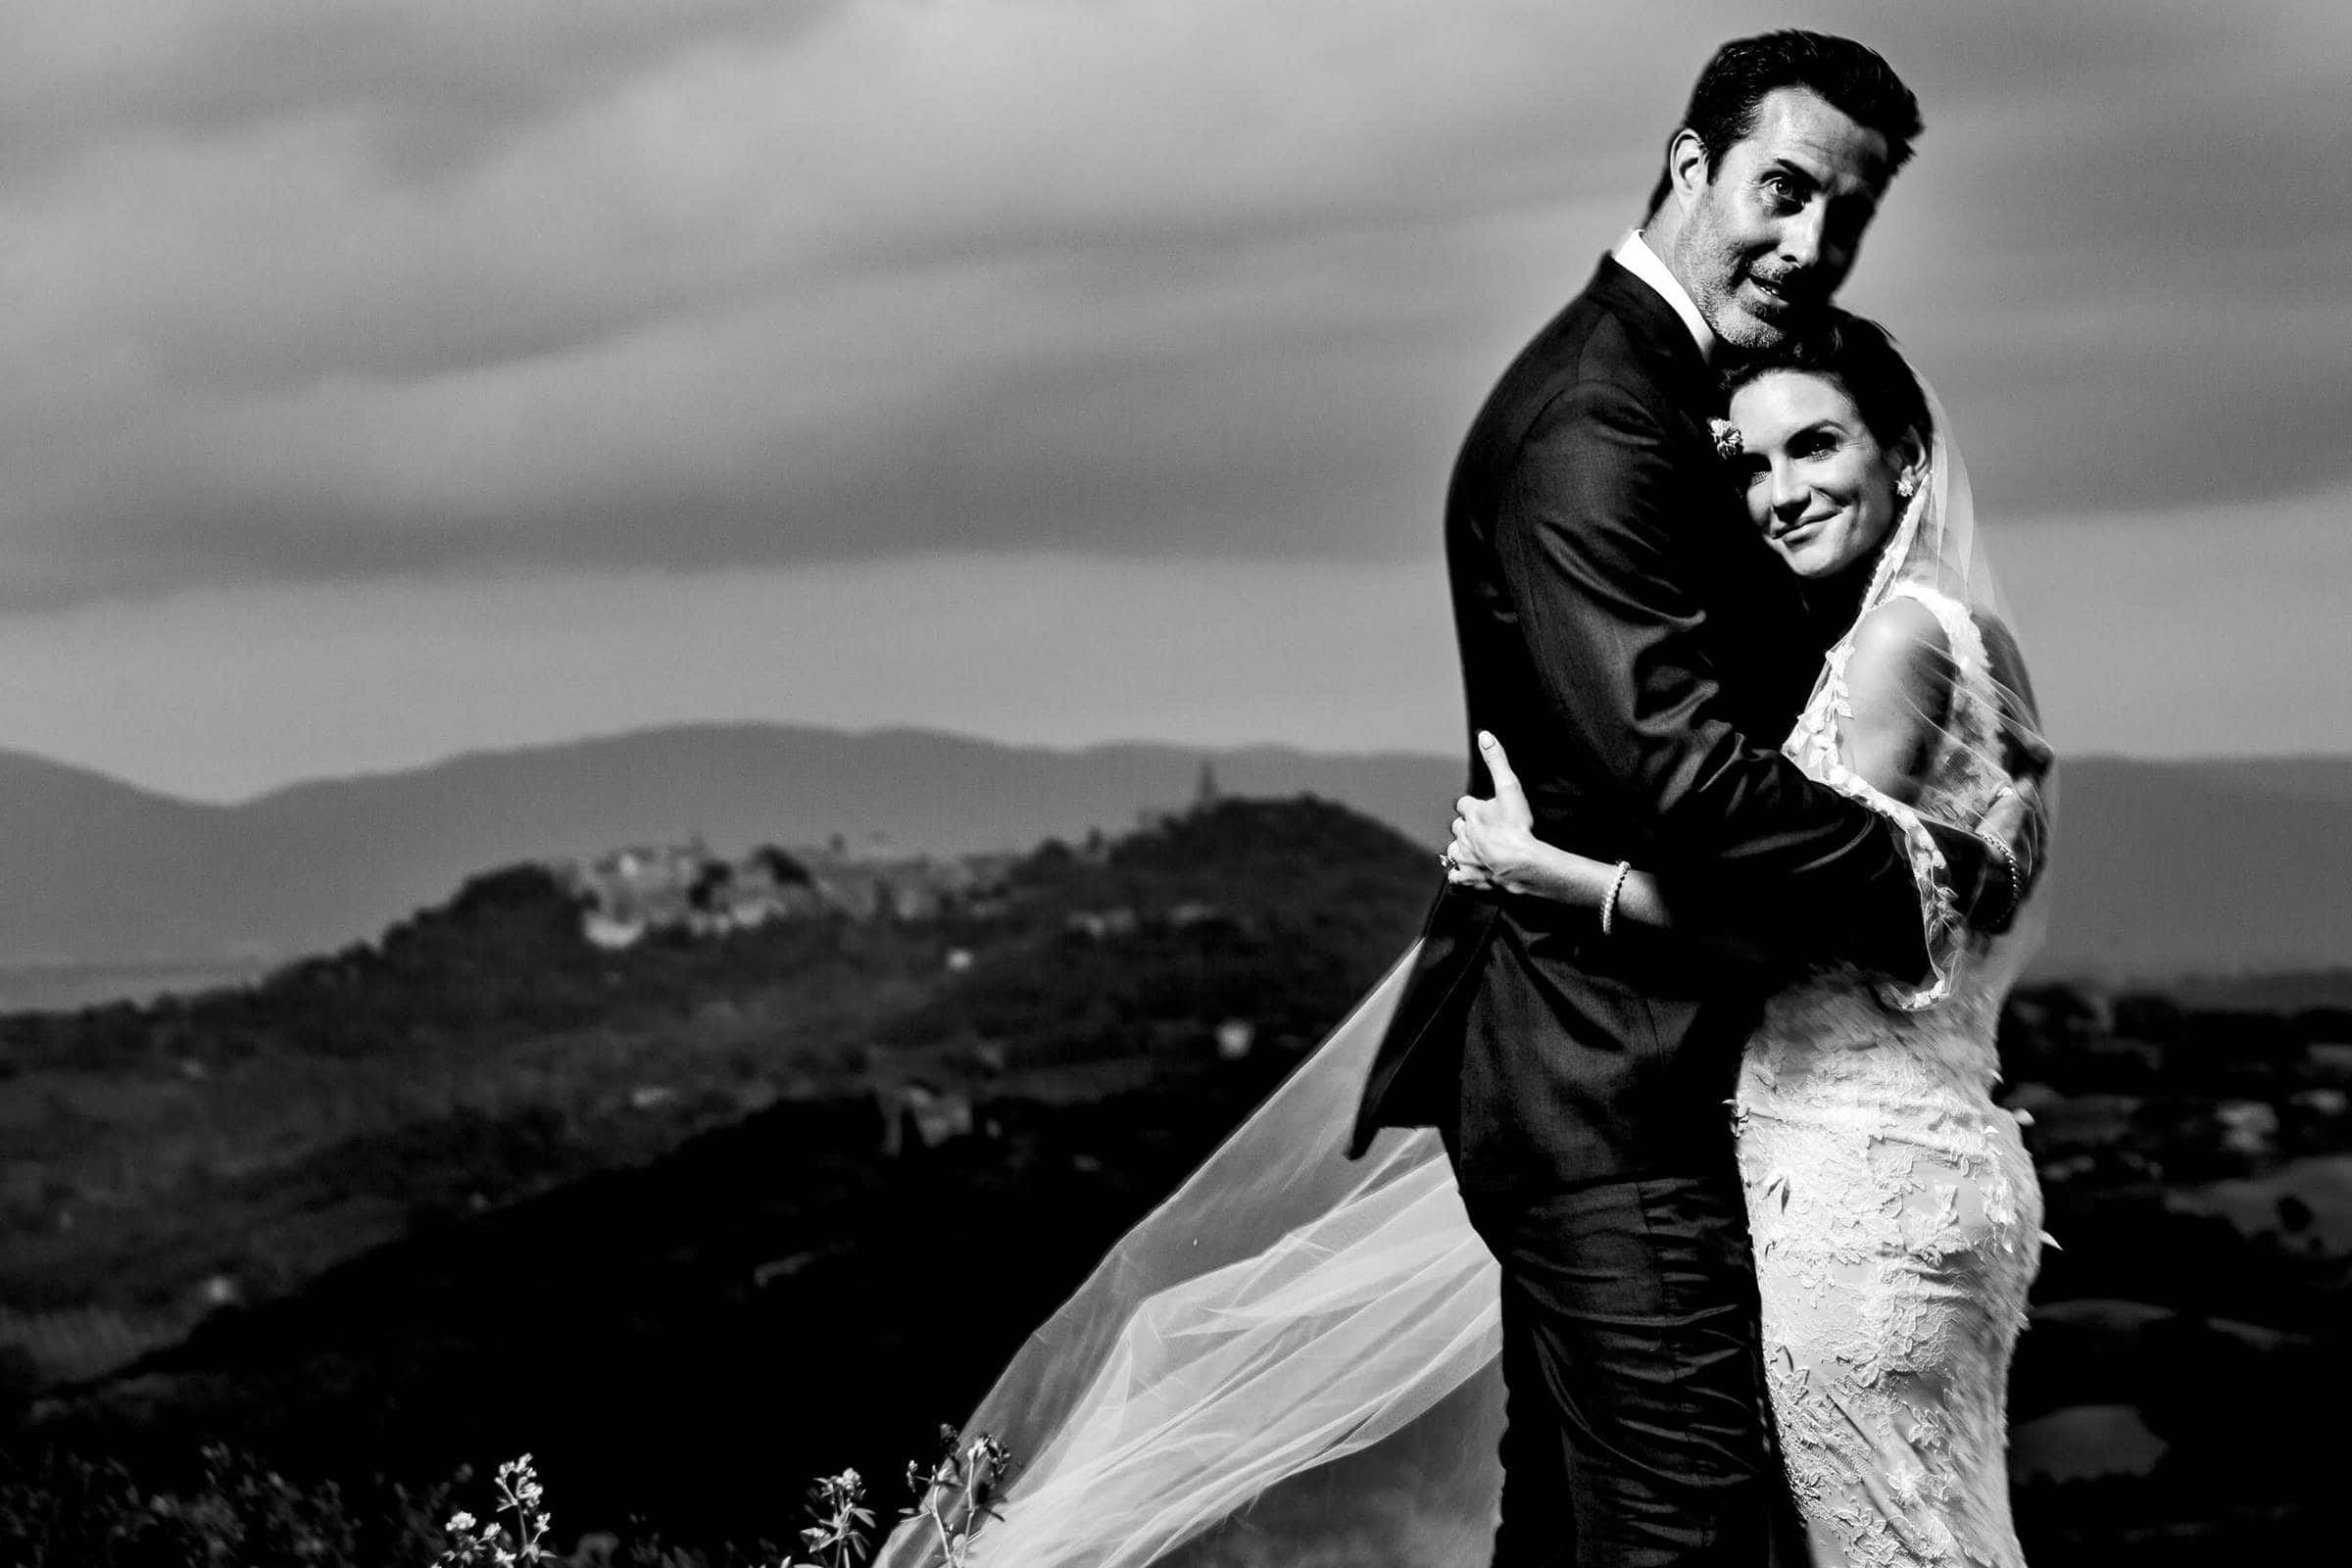 Bride and groom embracing together with the view from Villa Tre Grazie wedding celebration near Todi, Italy.